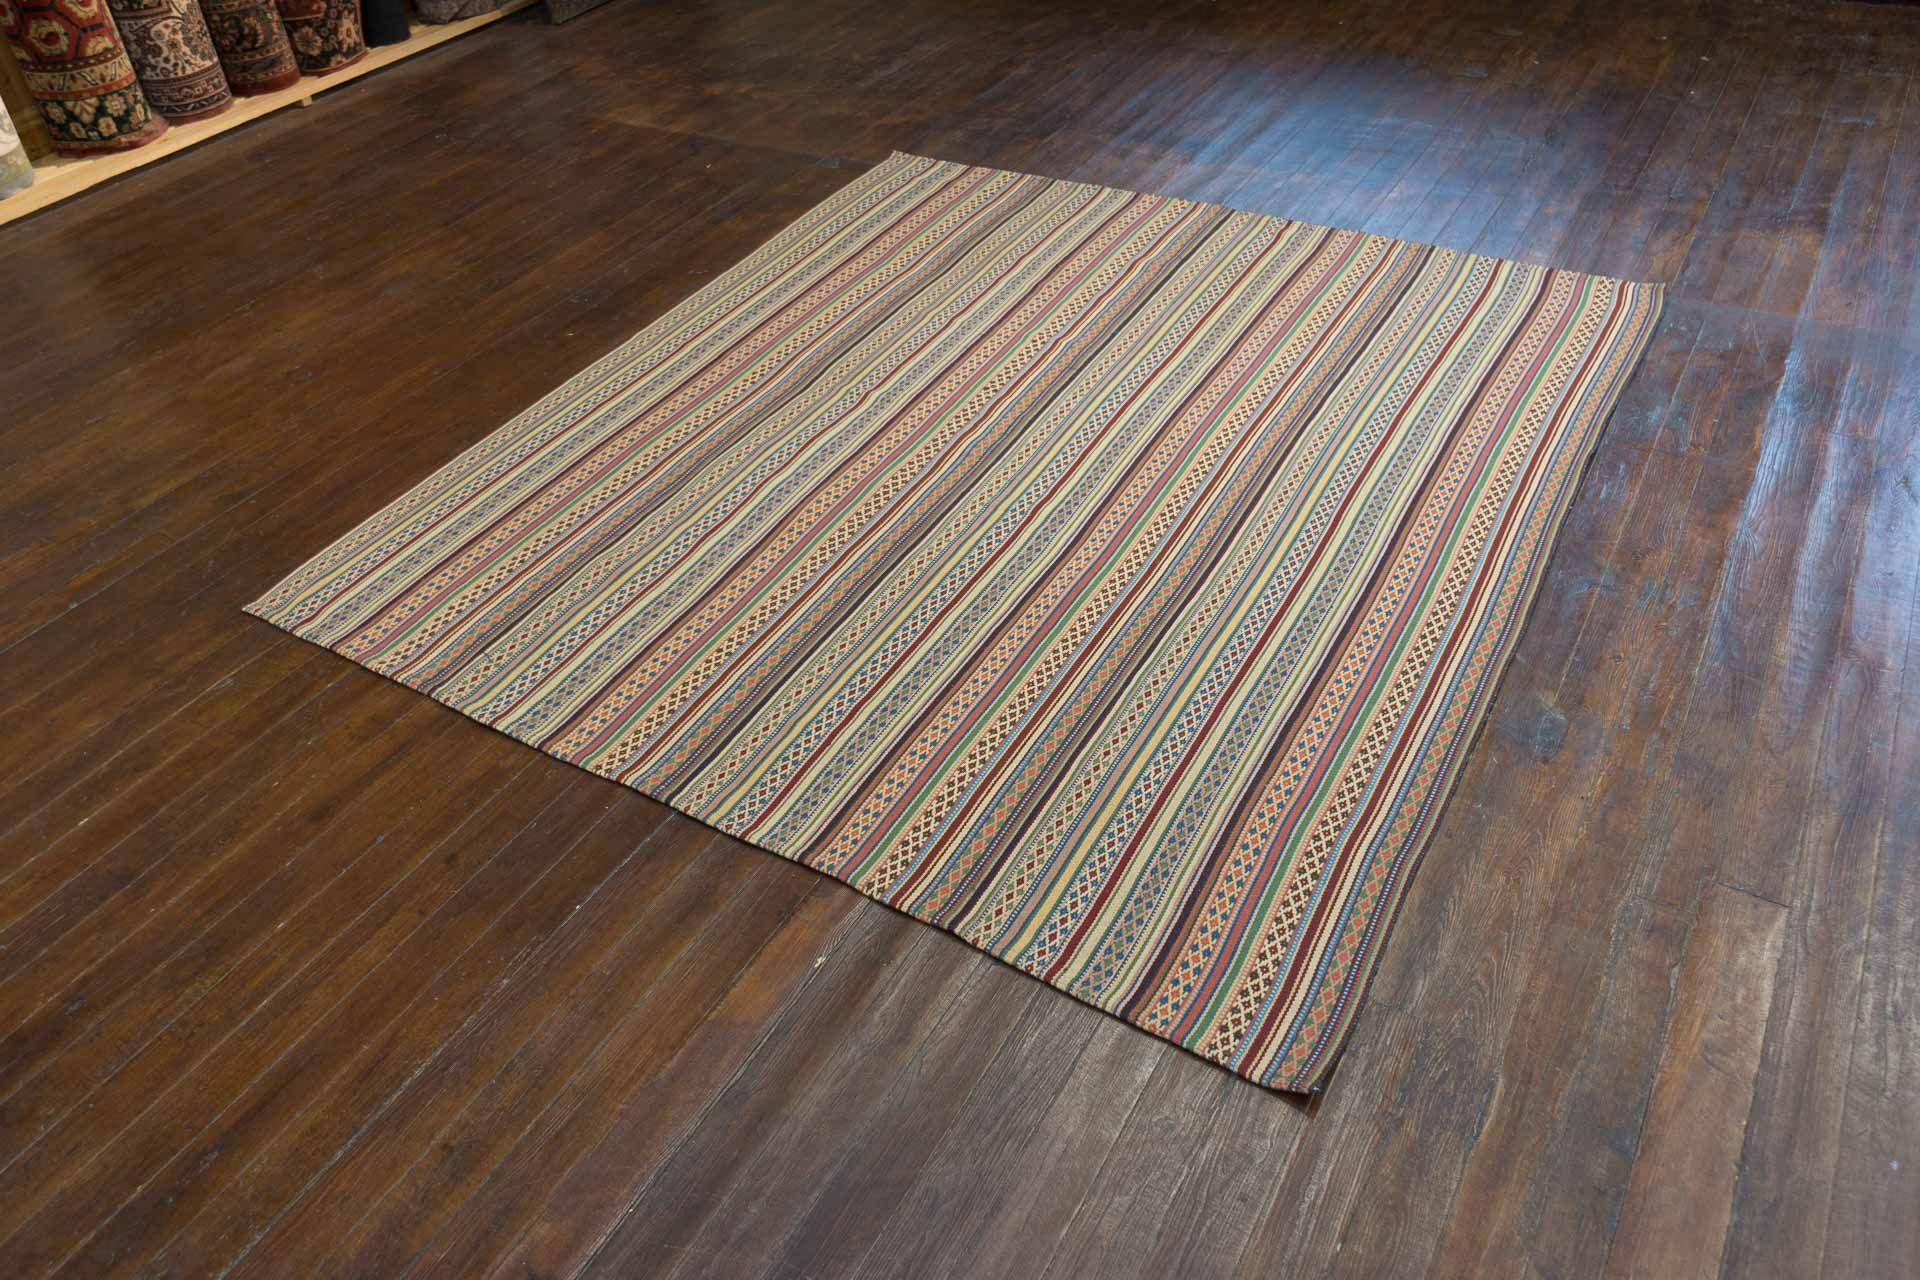 Hand Woven Jajim Kilim from Iran (Persian). Length: 221.0cm by Width: 192.0cm. Only £379 at https://www.olneyrugs.co.uk/shop/kilims-for-sale/persian-jajim-21088.html    Buy one of our gorgeous variety of Kazak rugs, kilim foot stools and Kilim cushions at www.olneyrugs.co.uk